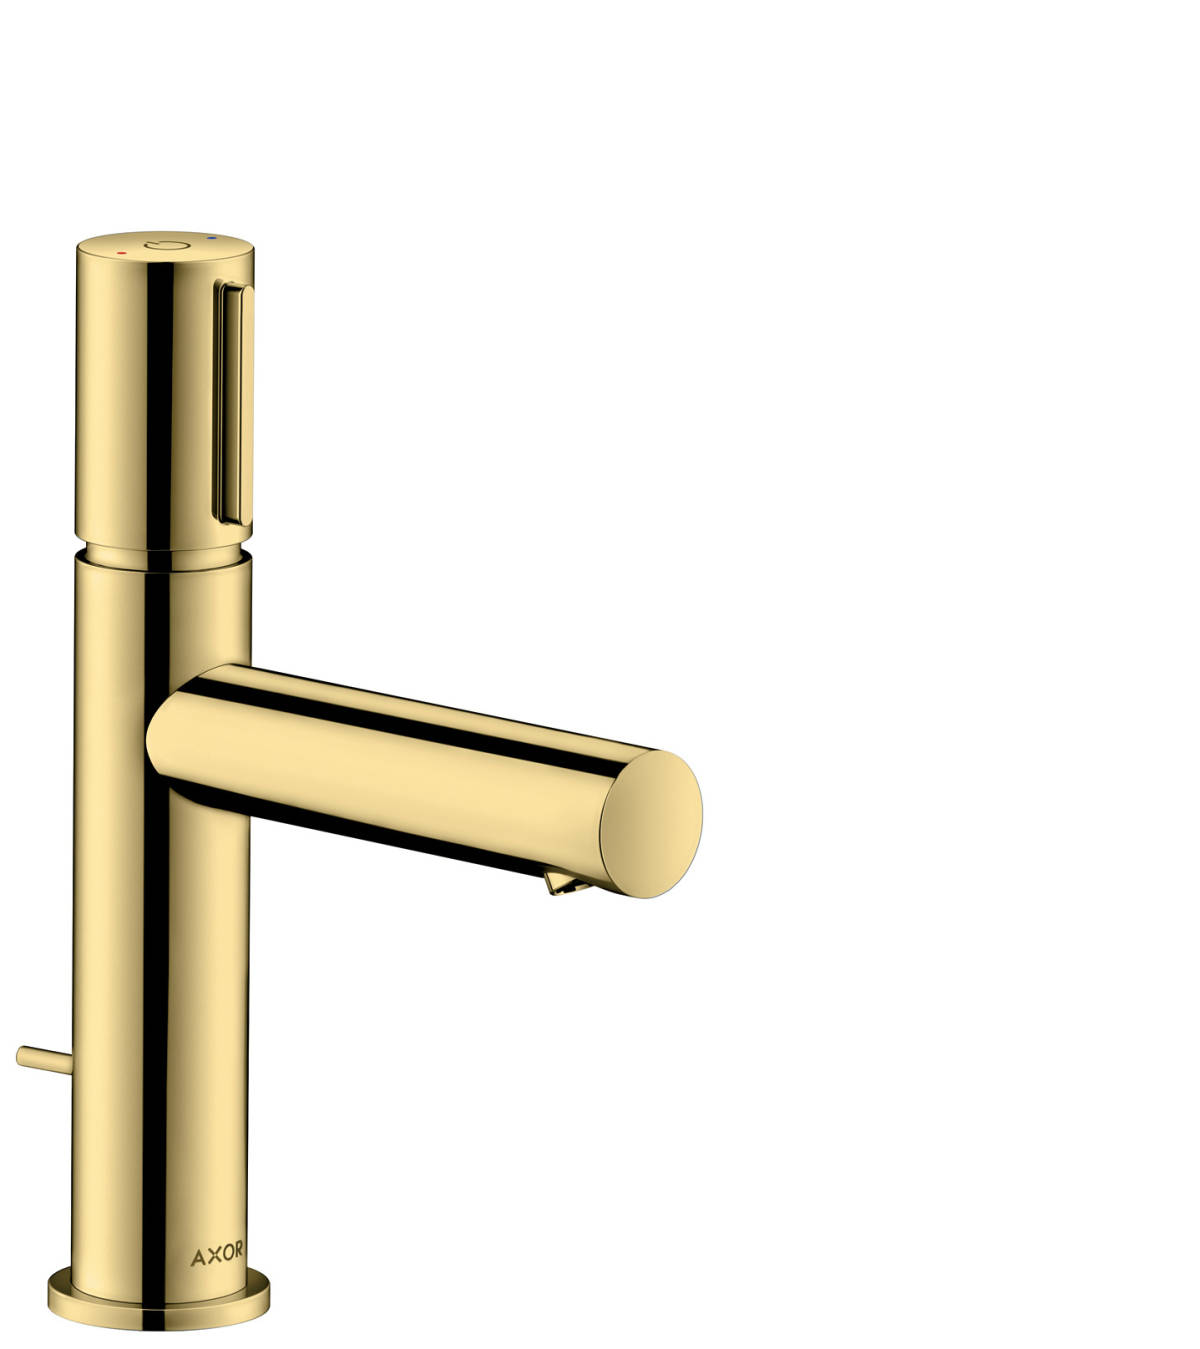 Basin mixer Select 110 with pop-up waste set, Polished Brass, 45010930